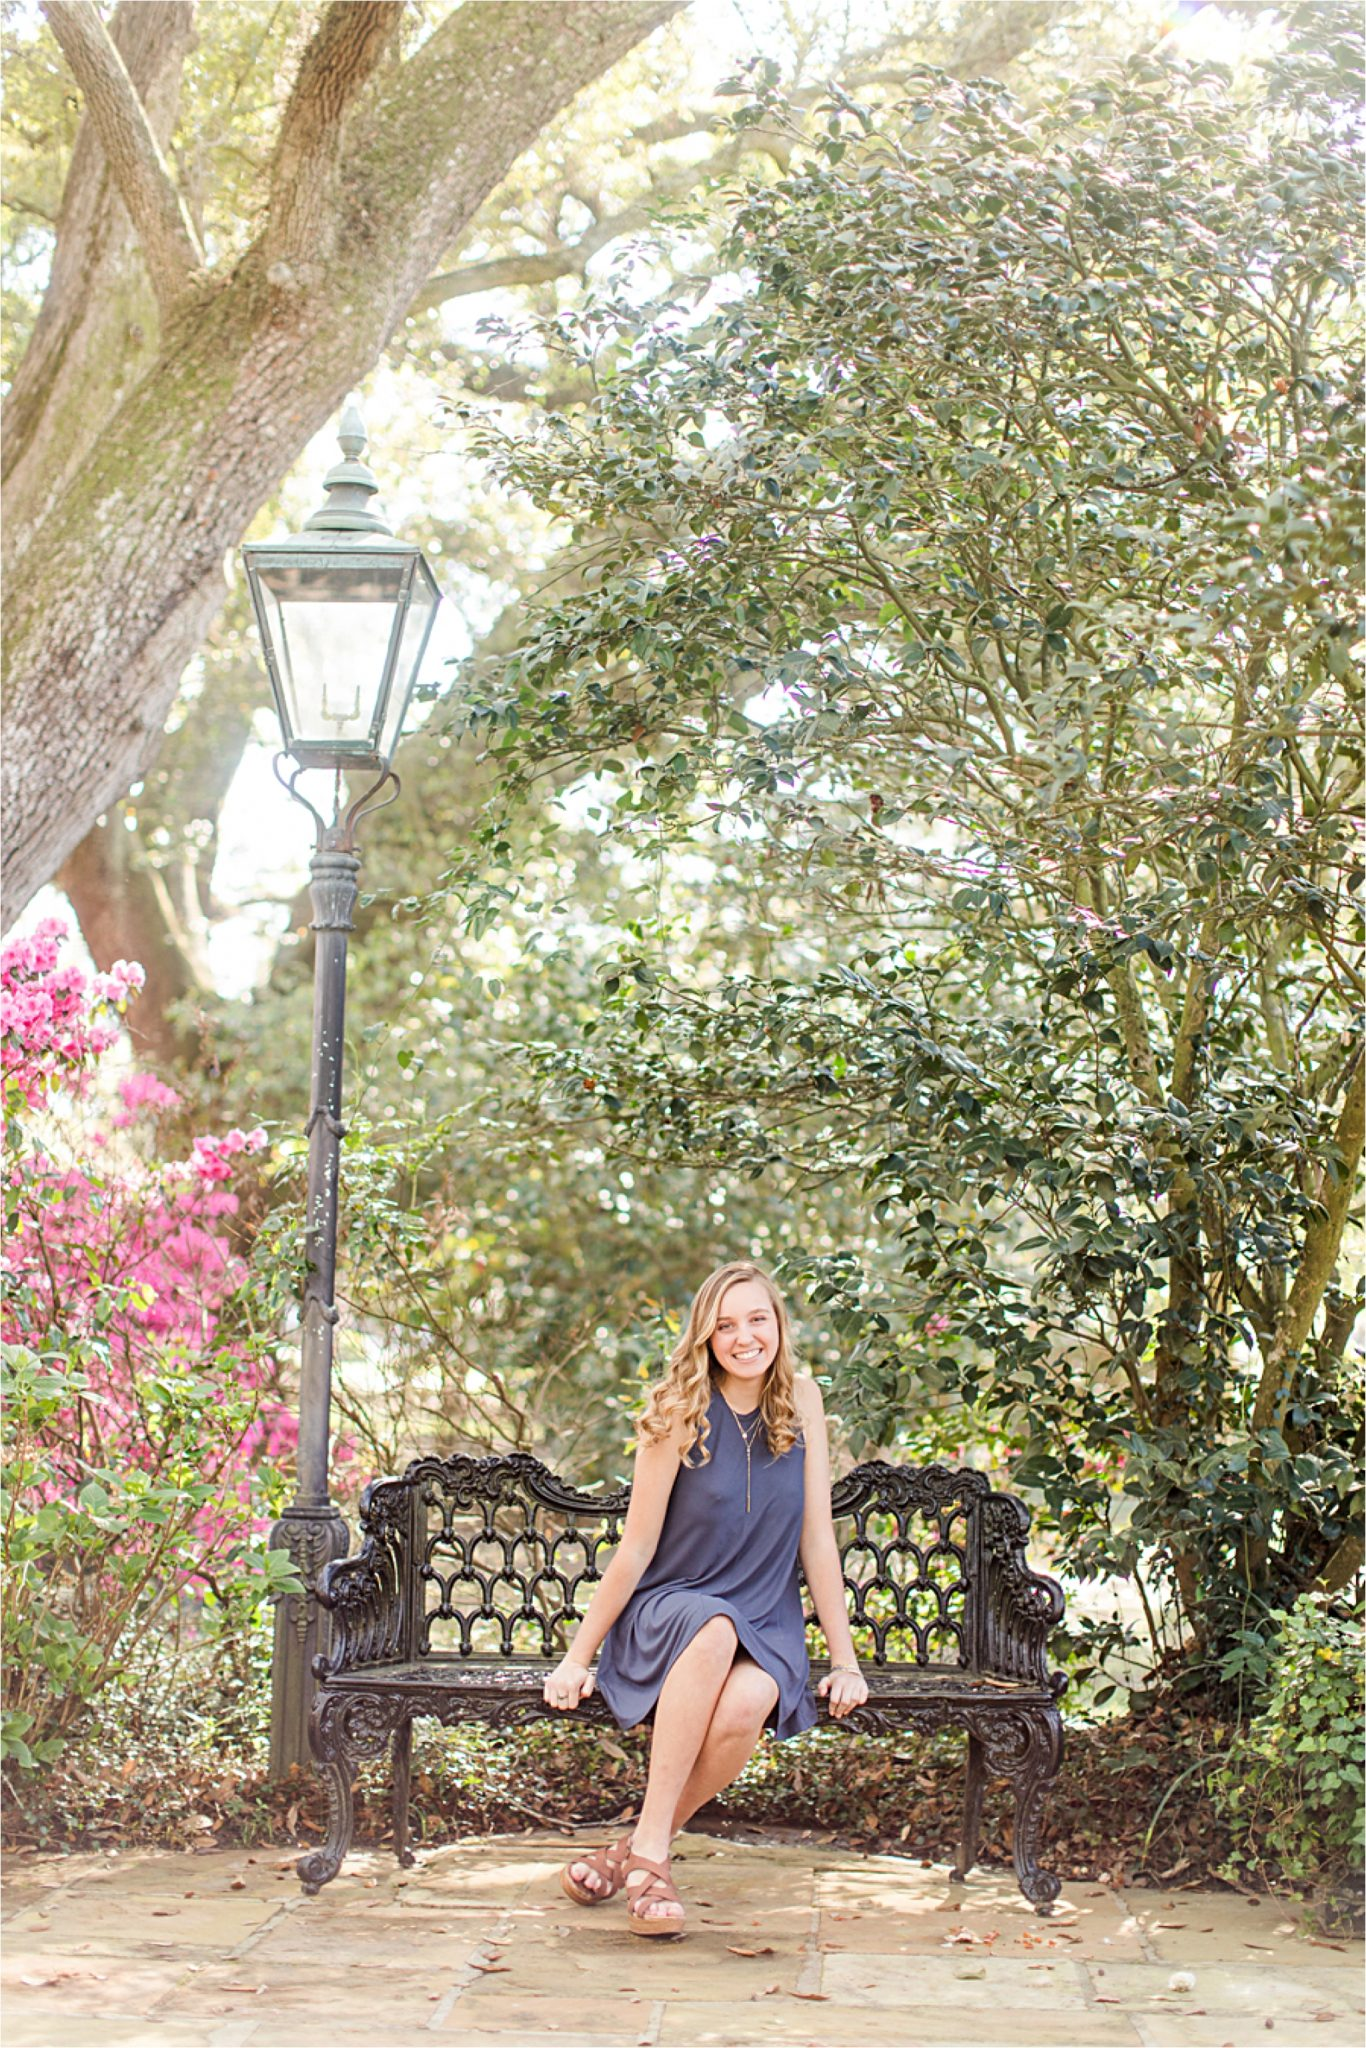 Bragg Mitchell Mansion-Senior Photo Session-Alabama Photographer-Portraits